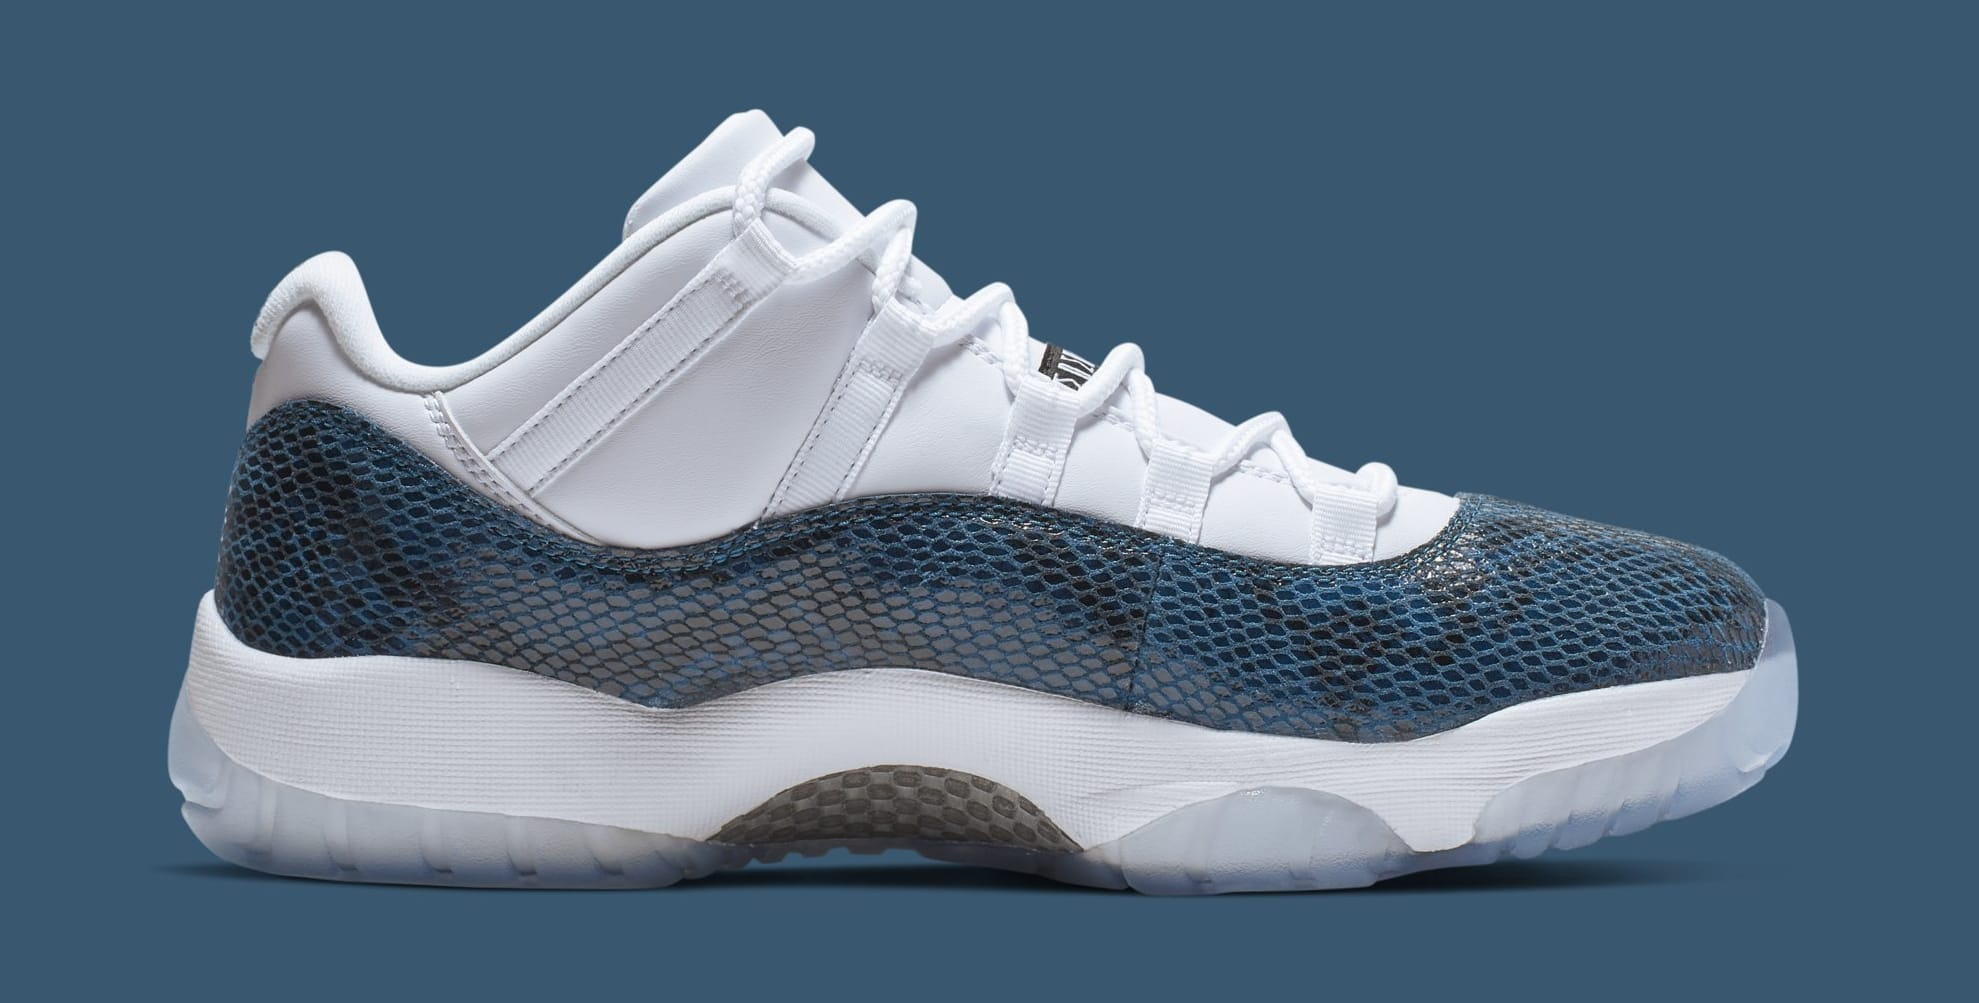 low cost 4cb55 f2414 Image via Nike Air Jordan 11 Low  Blue Snakeskin  CD6846-102 (Medial)